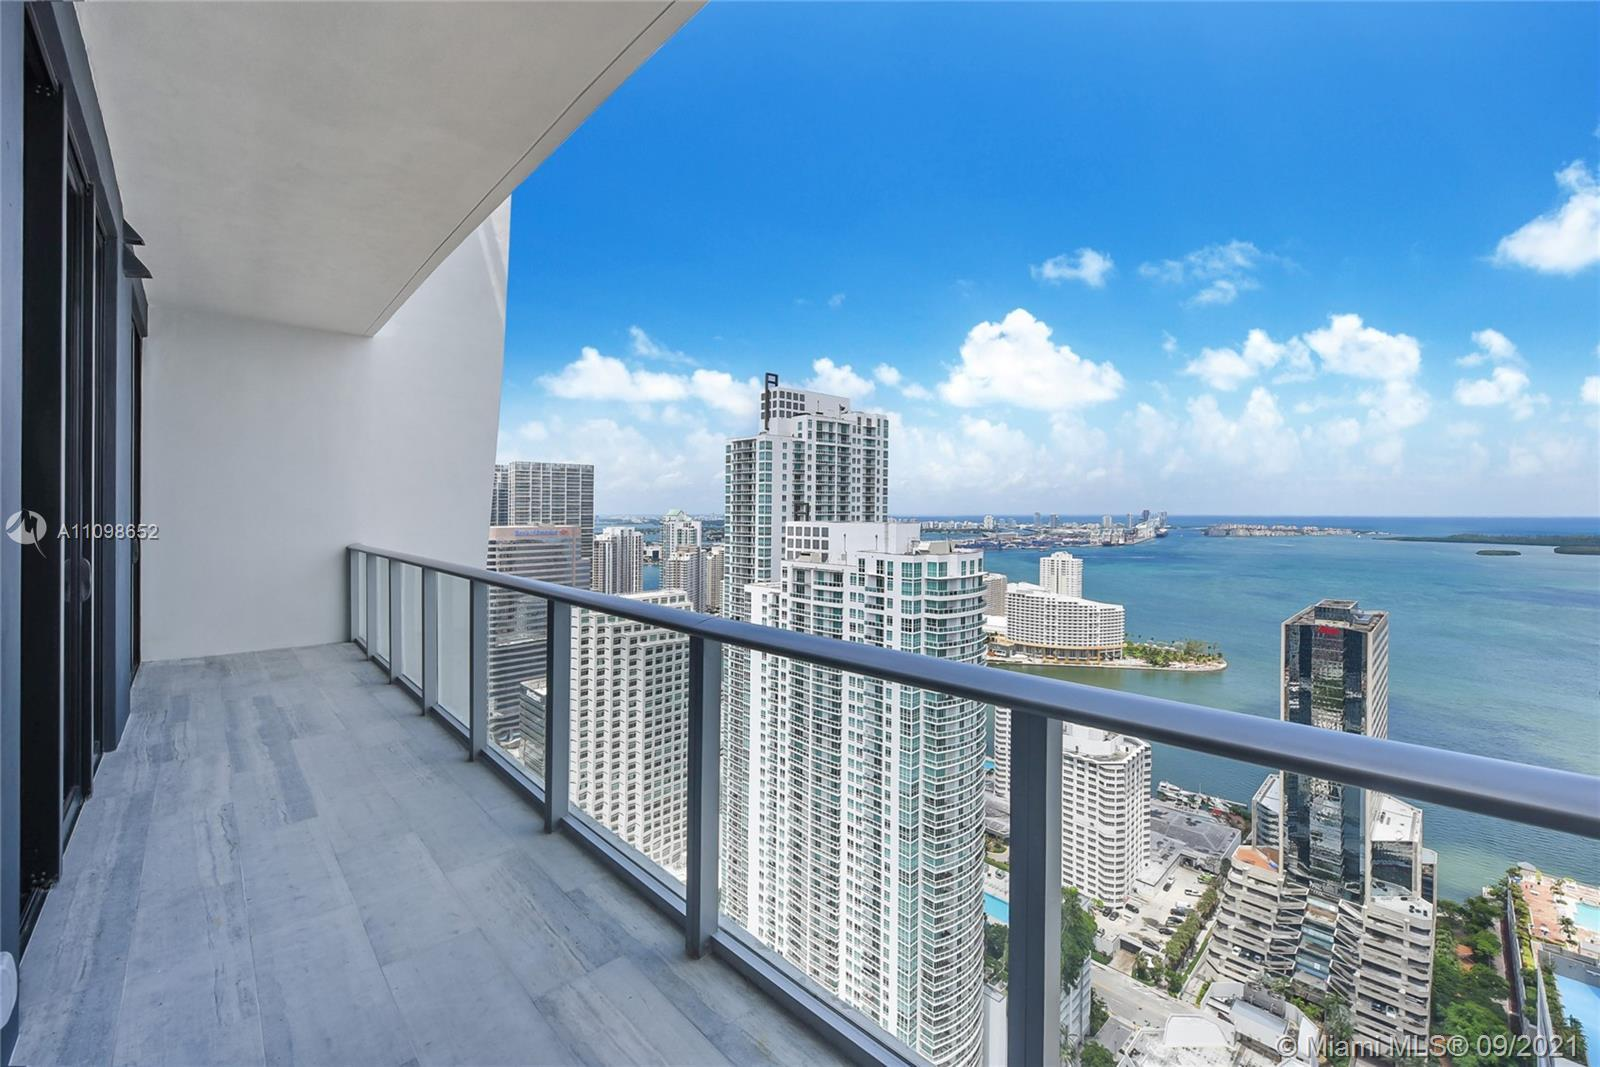 2 bed + DEN unit, centrally located in the most amazing condo in the Brickell area, LOTS of amenitie